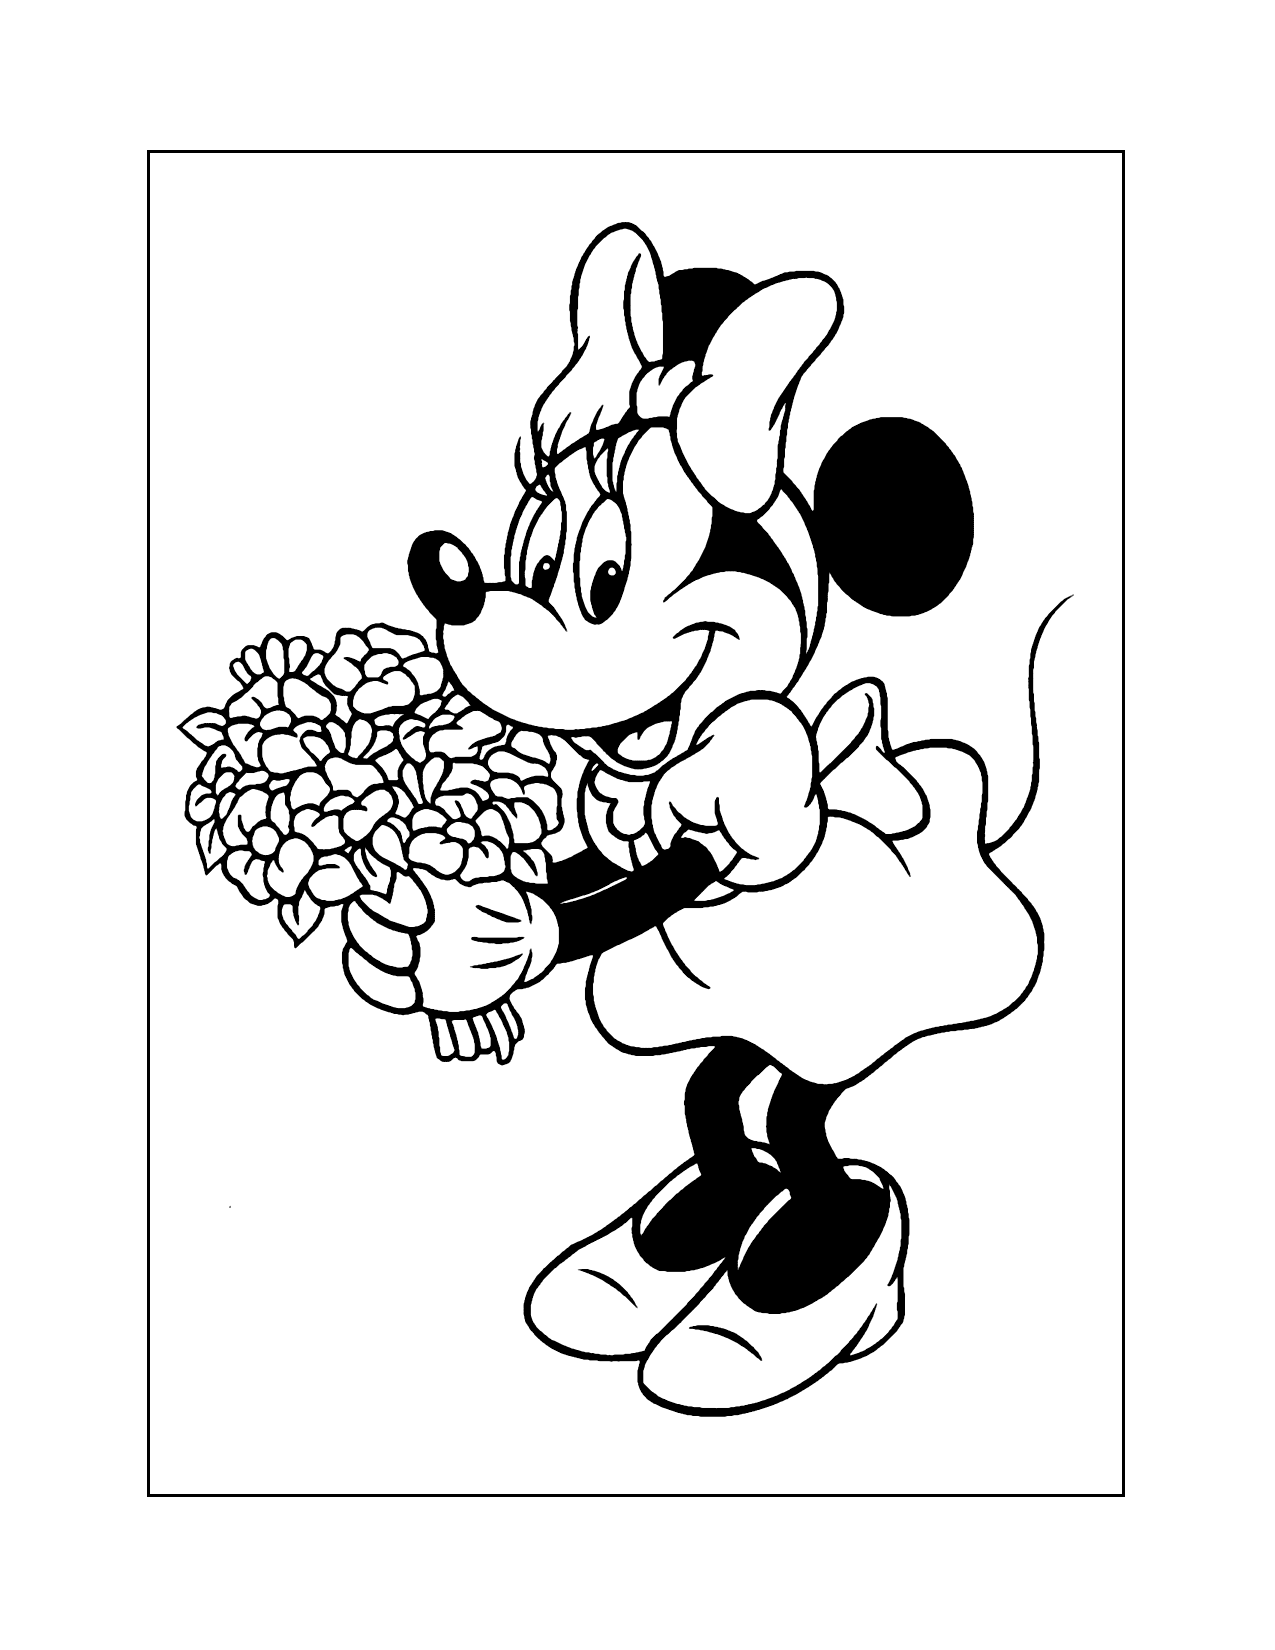 Minnie Mouse With Flower Bouquet Coloring Page